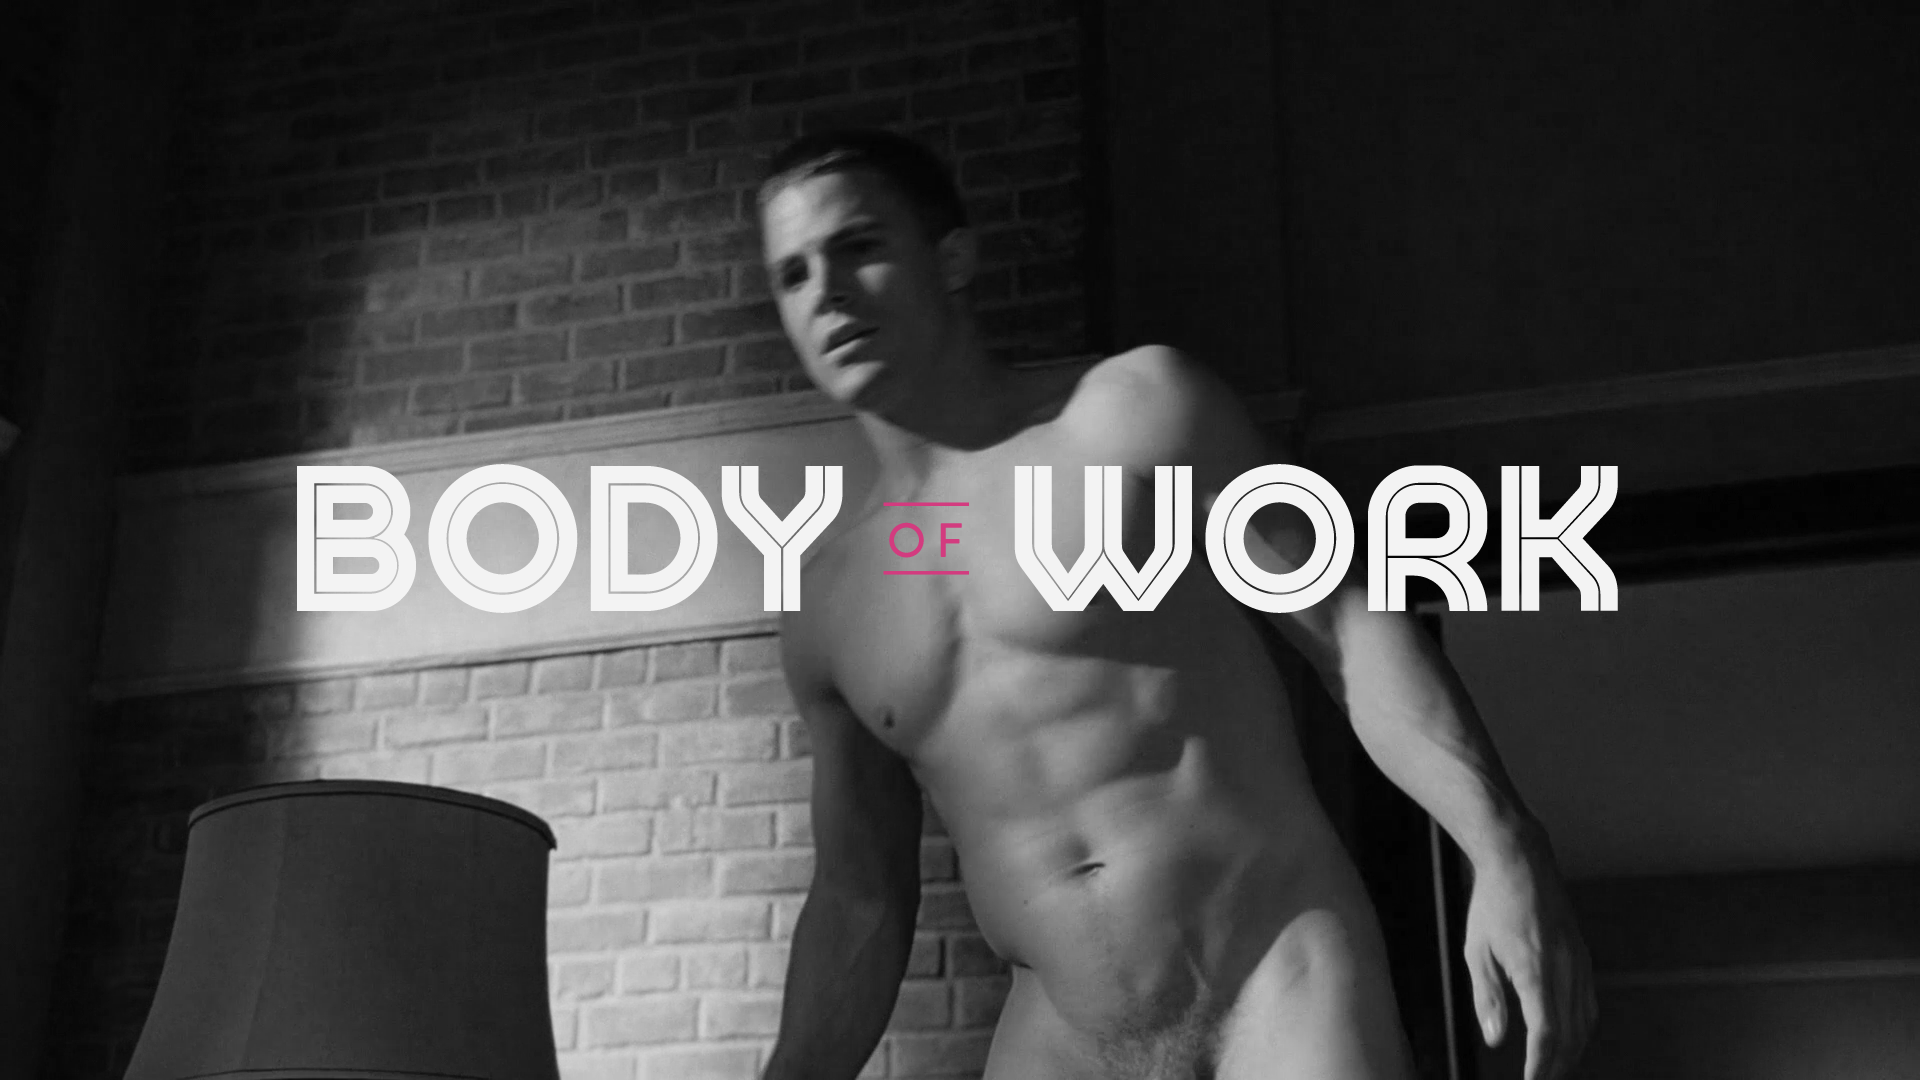 Bodyofwork actor 00 00 04 05 still002 nude preview image